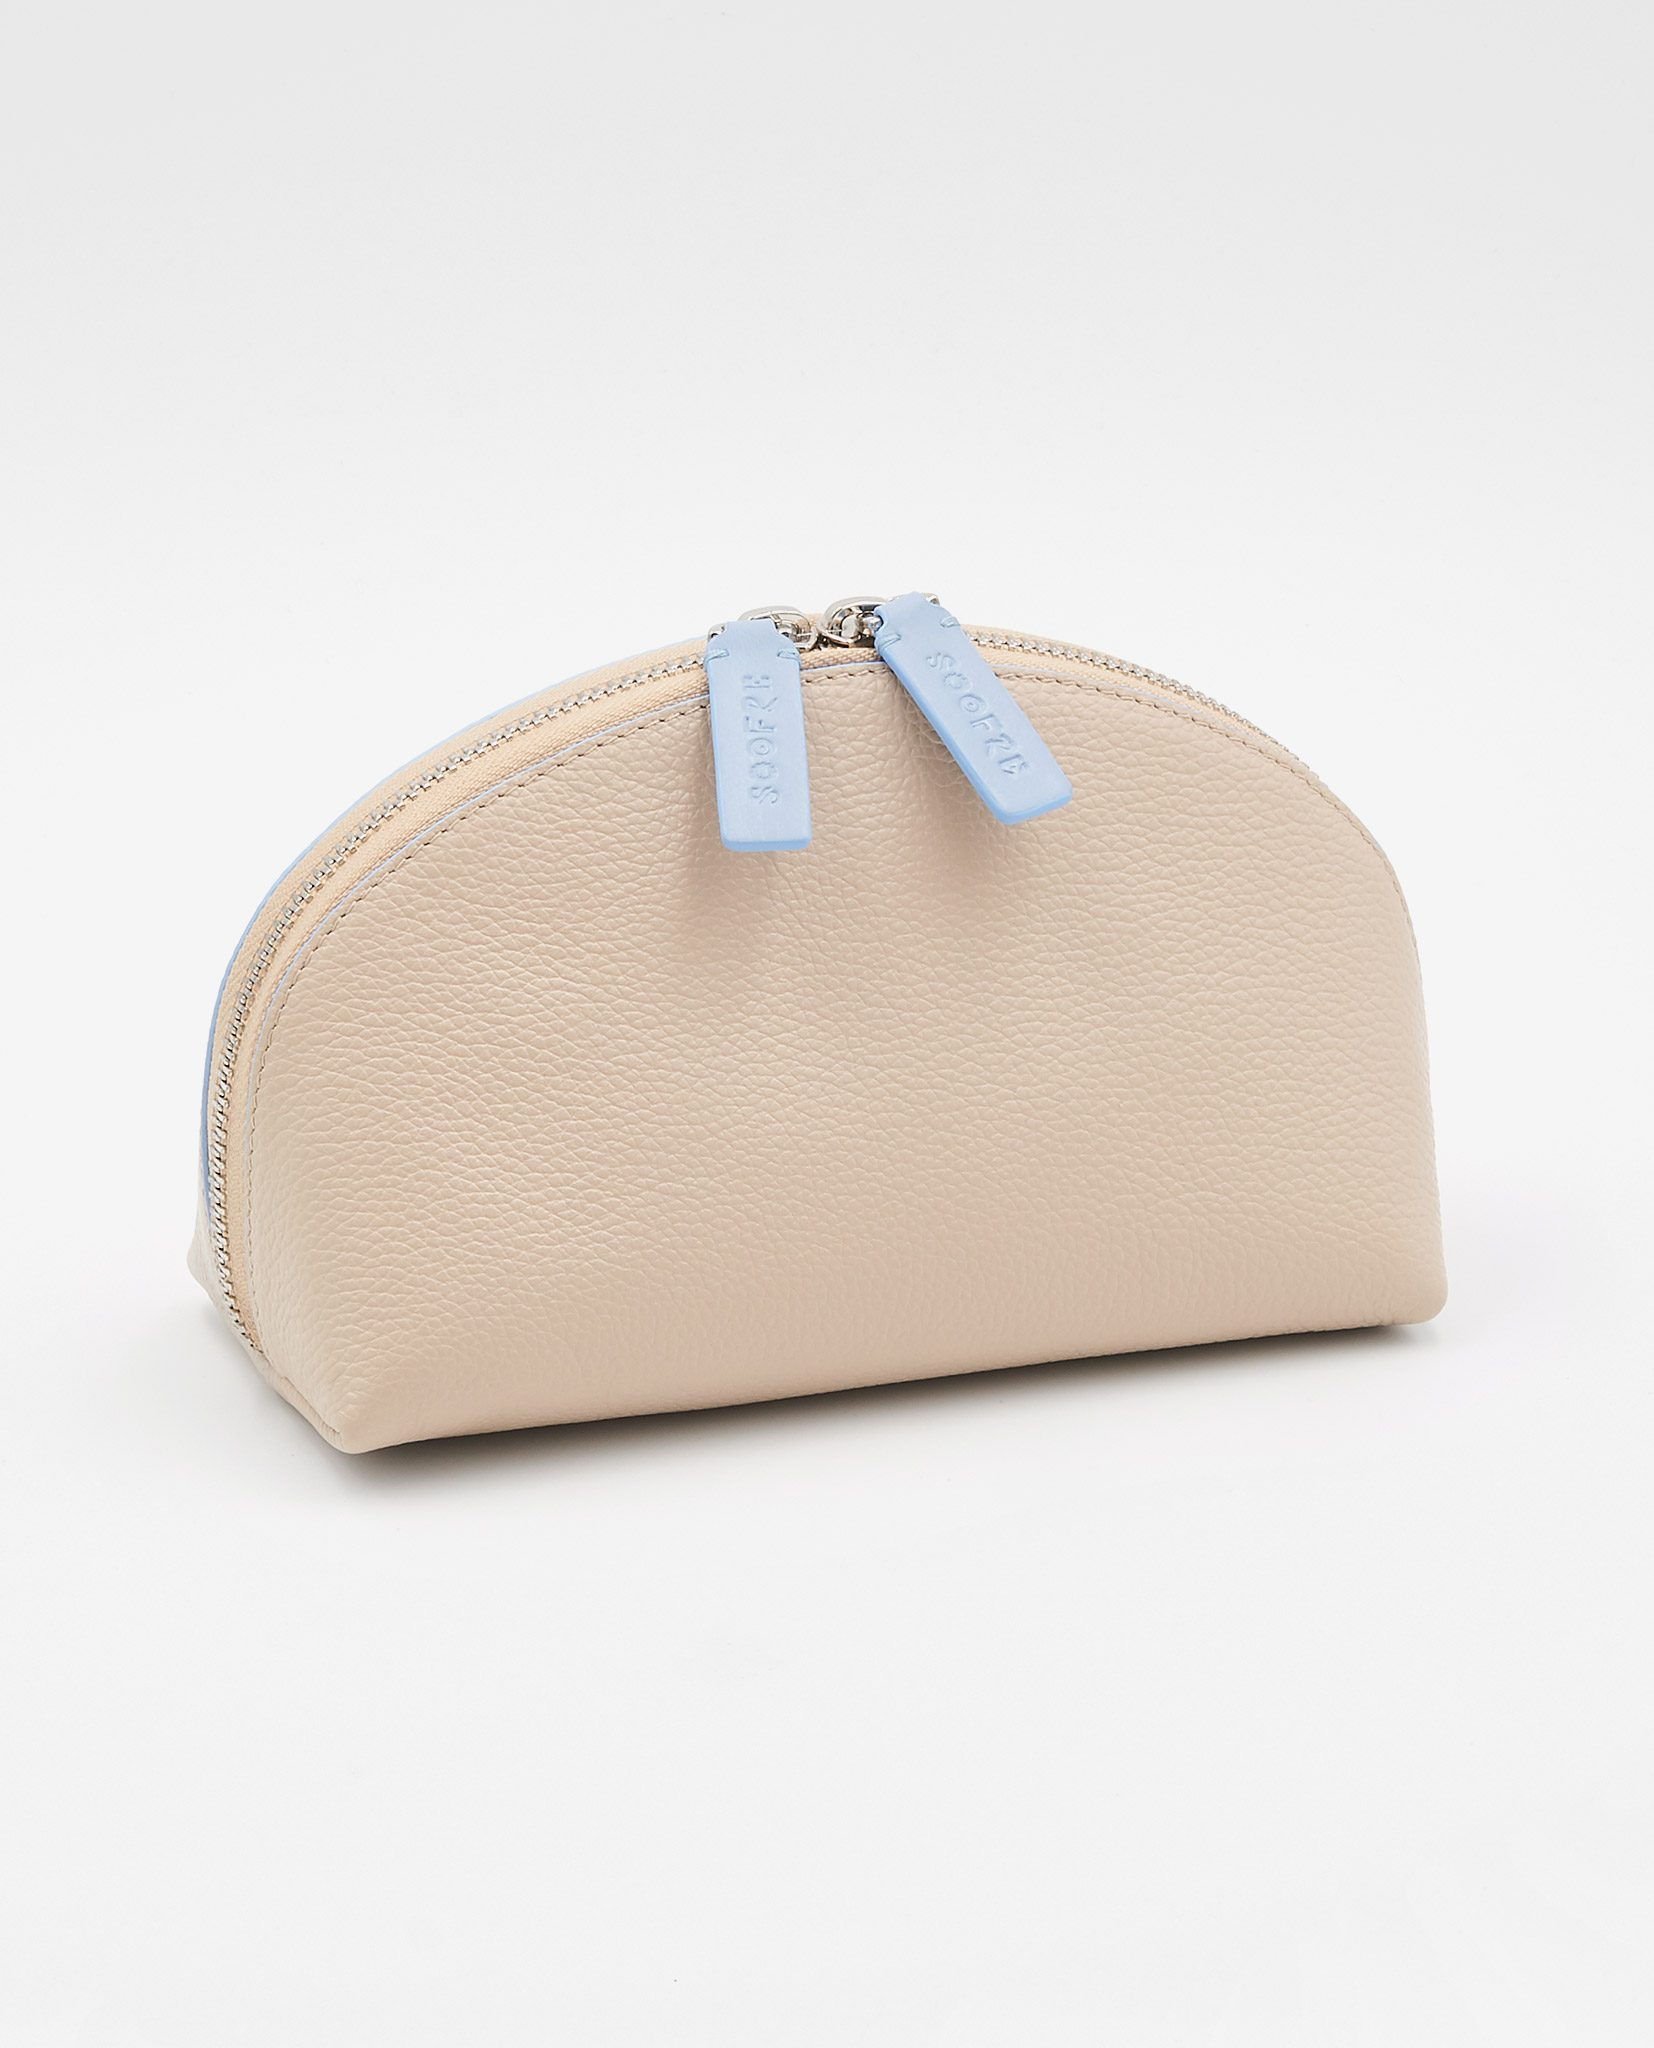 Soofre_Cosmetic-Bag-Cream-Pale-Blue_1